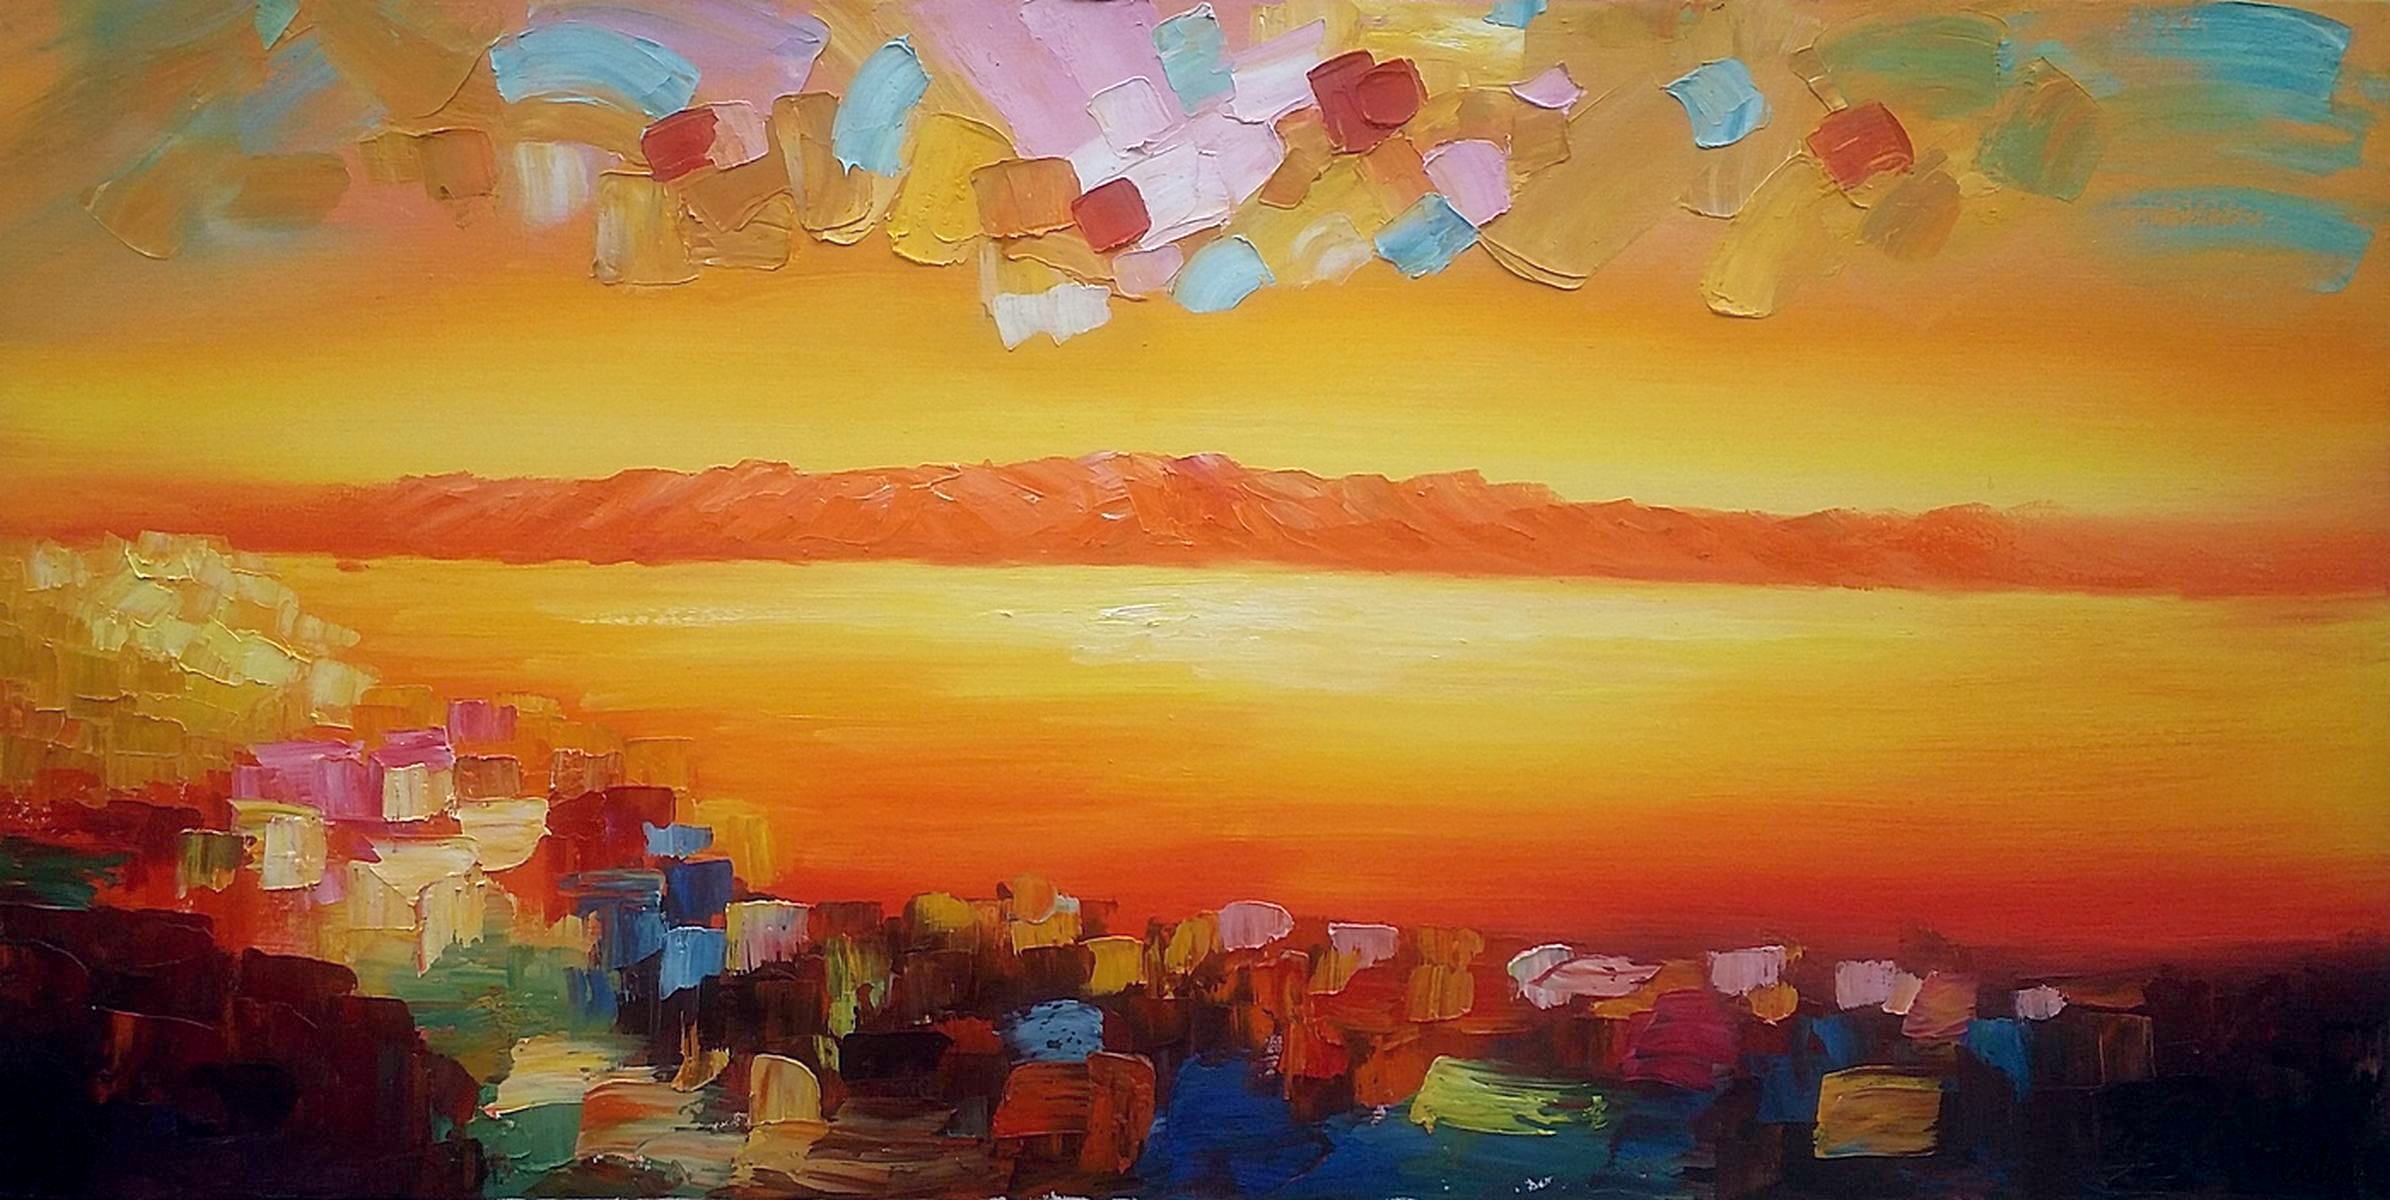 Abstract Painting, Original Wall Art, Abstract Landscape Art, Large Art, Canvas Art, Wall Art, Original Oil Painting, 372